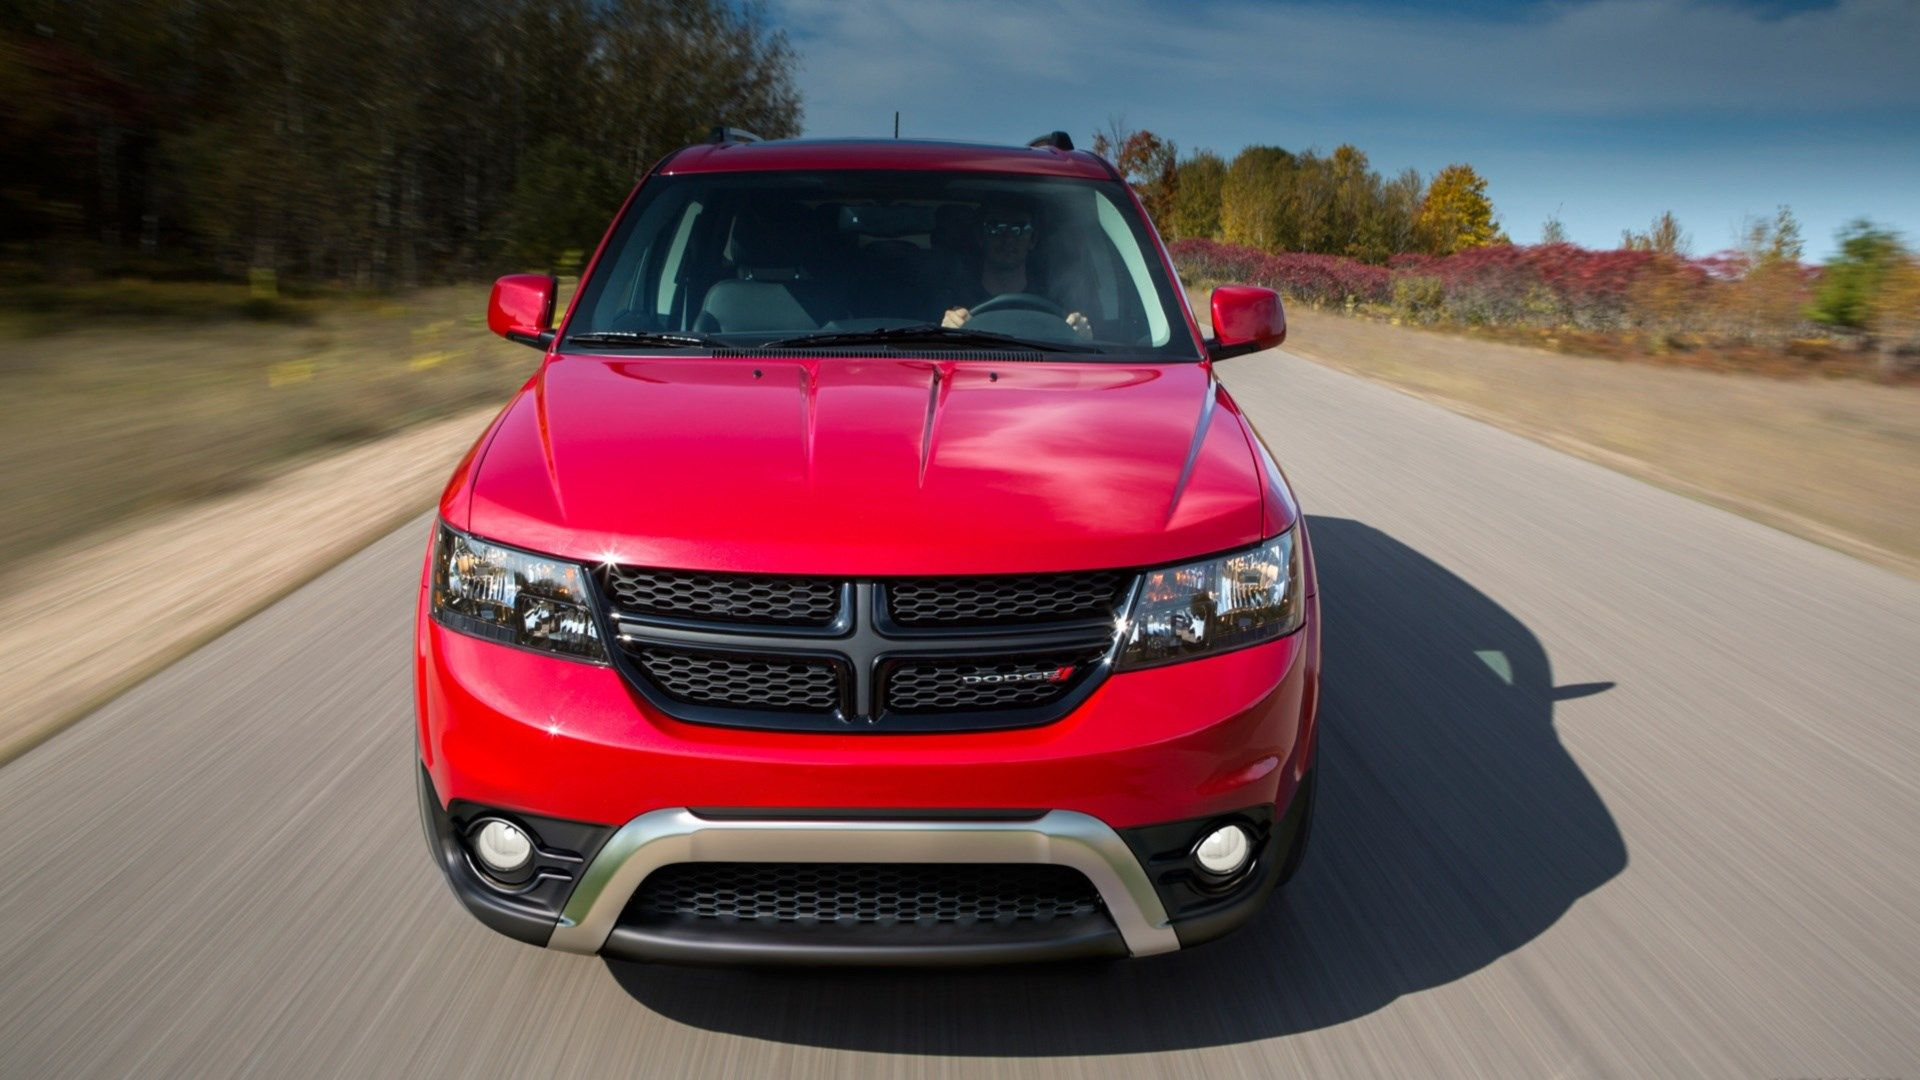 1920x1080 free download pictures of dodge journey